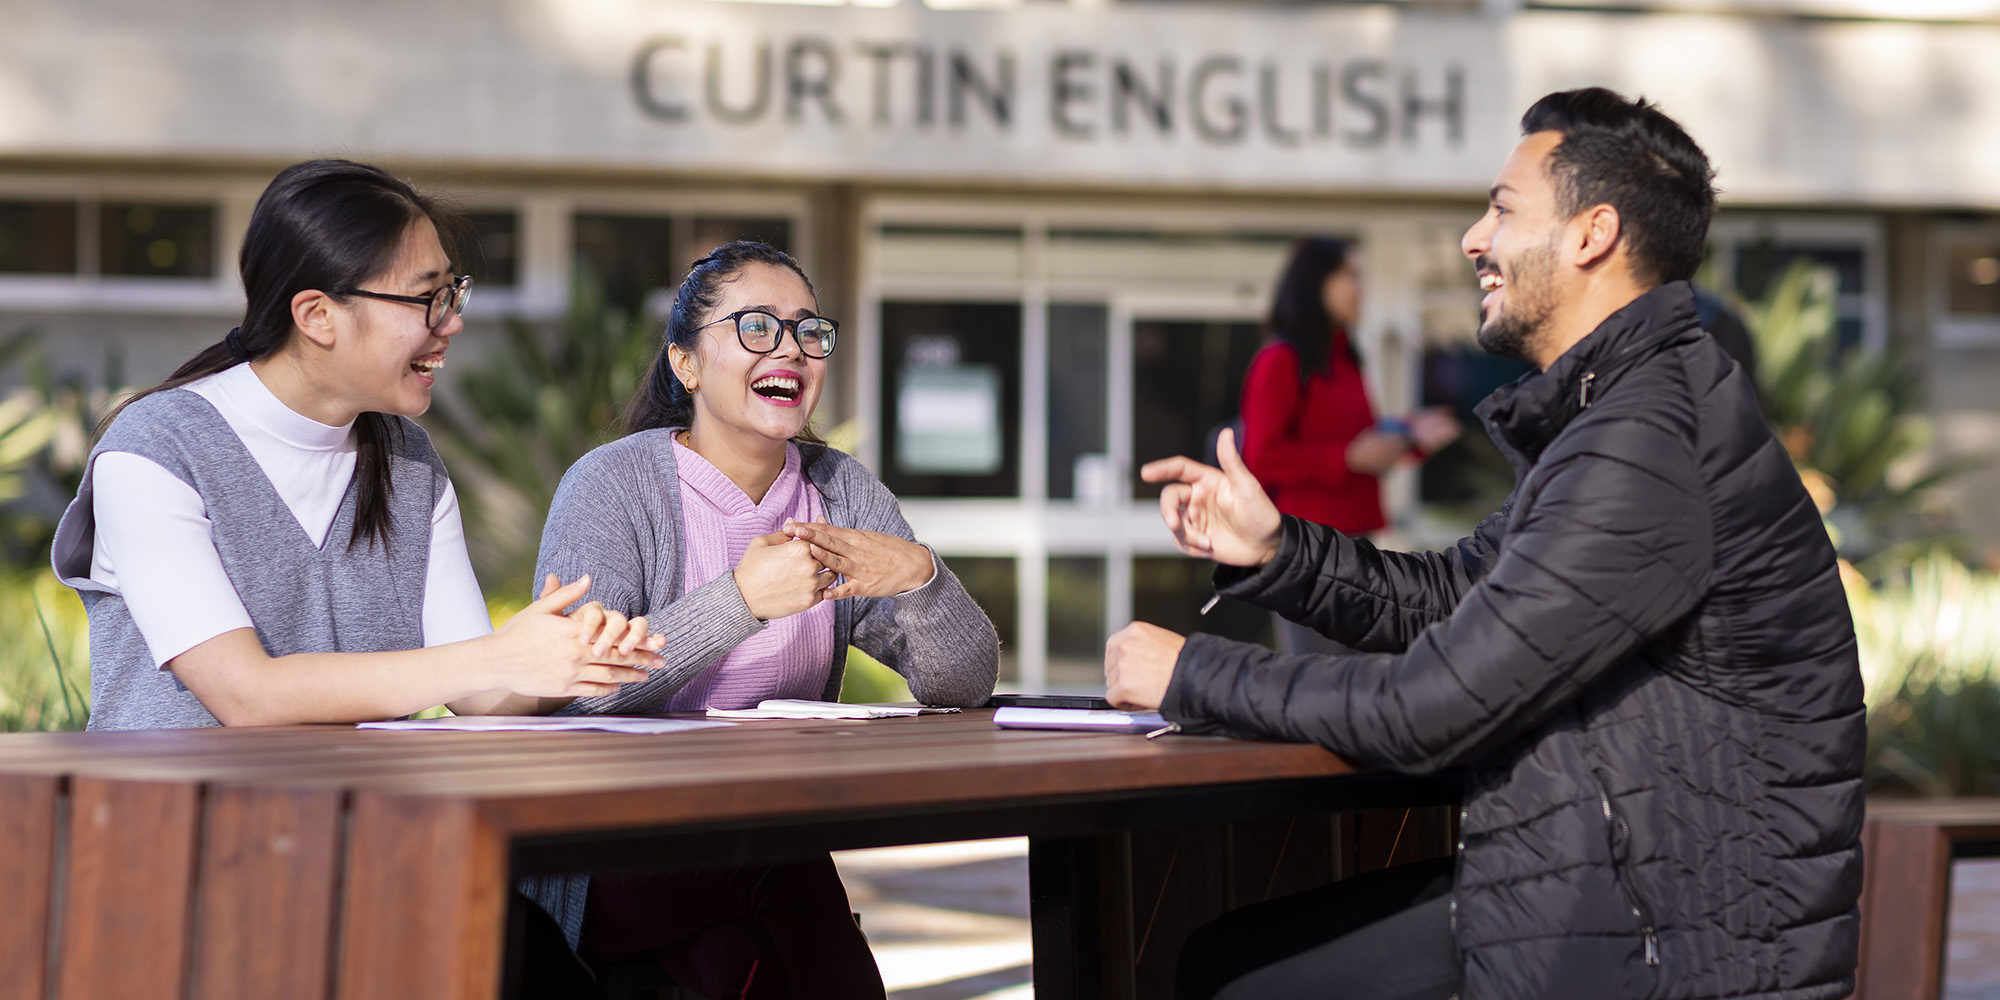 Two female and one male student sitting at a table, talking and laughing